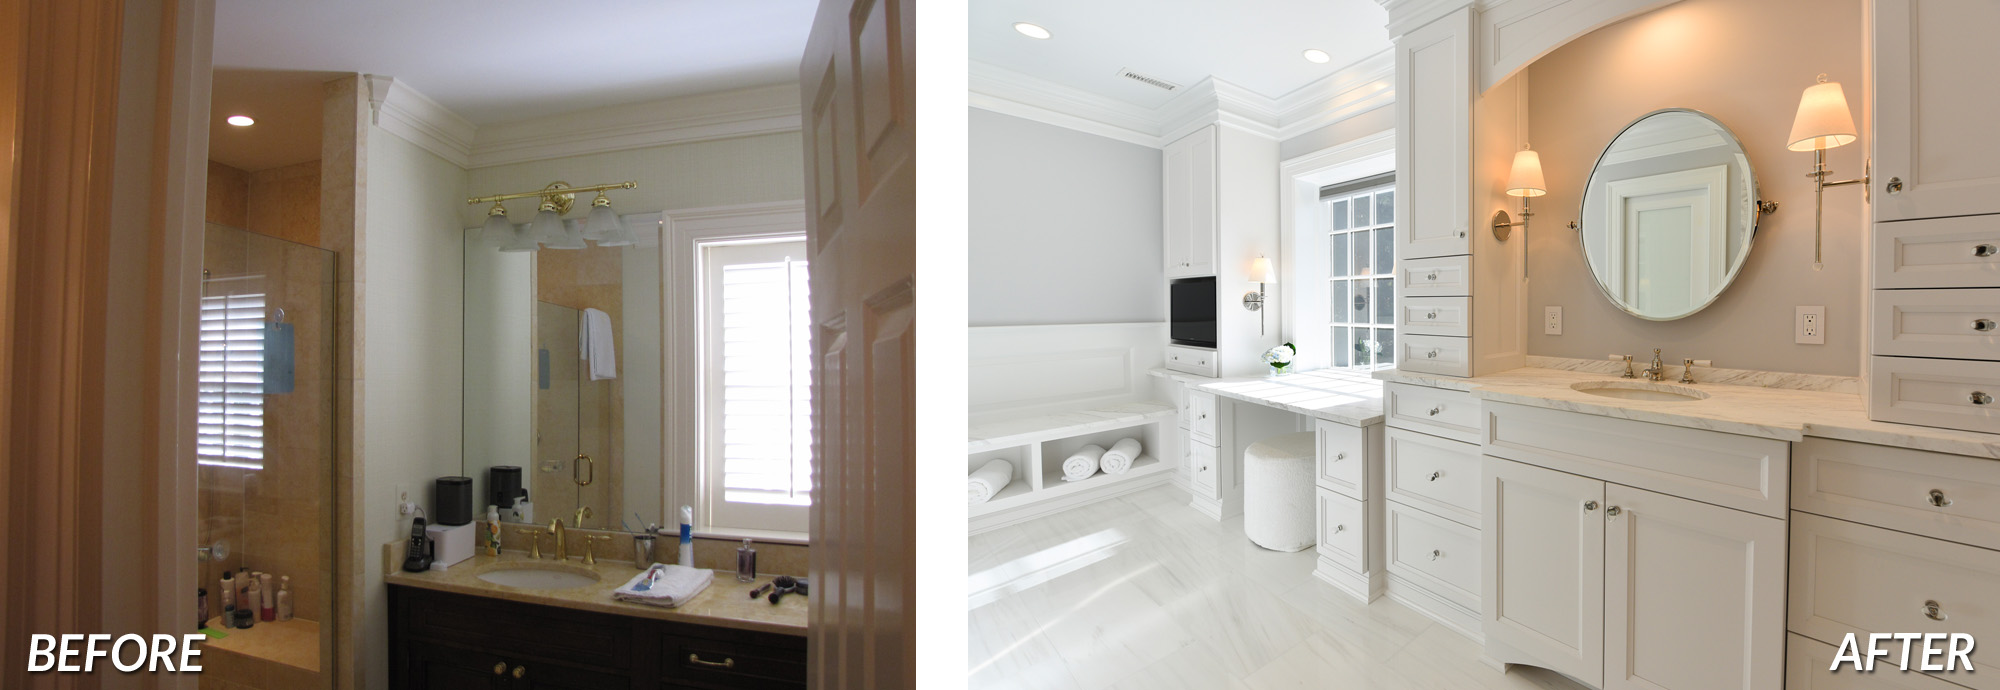 BOWA Design Design Build - McLean Master Bath Renovation Before & After